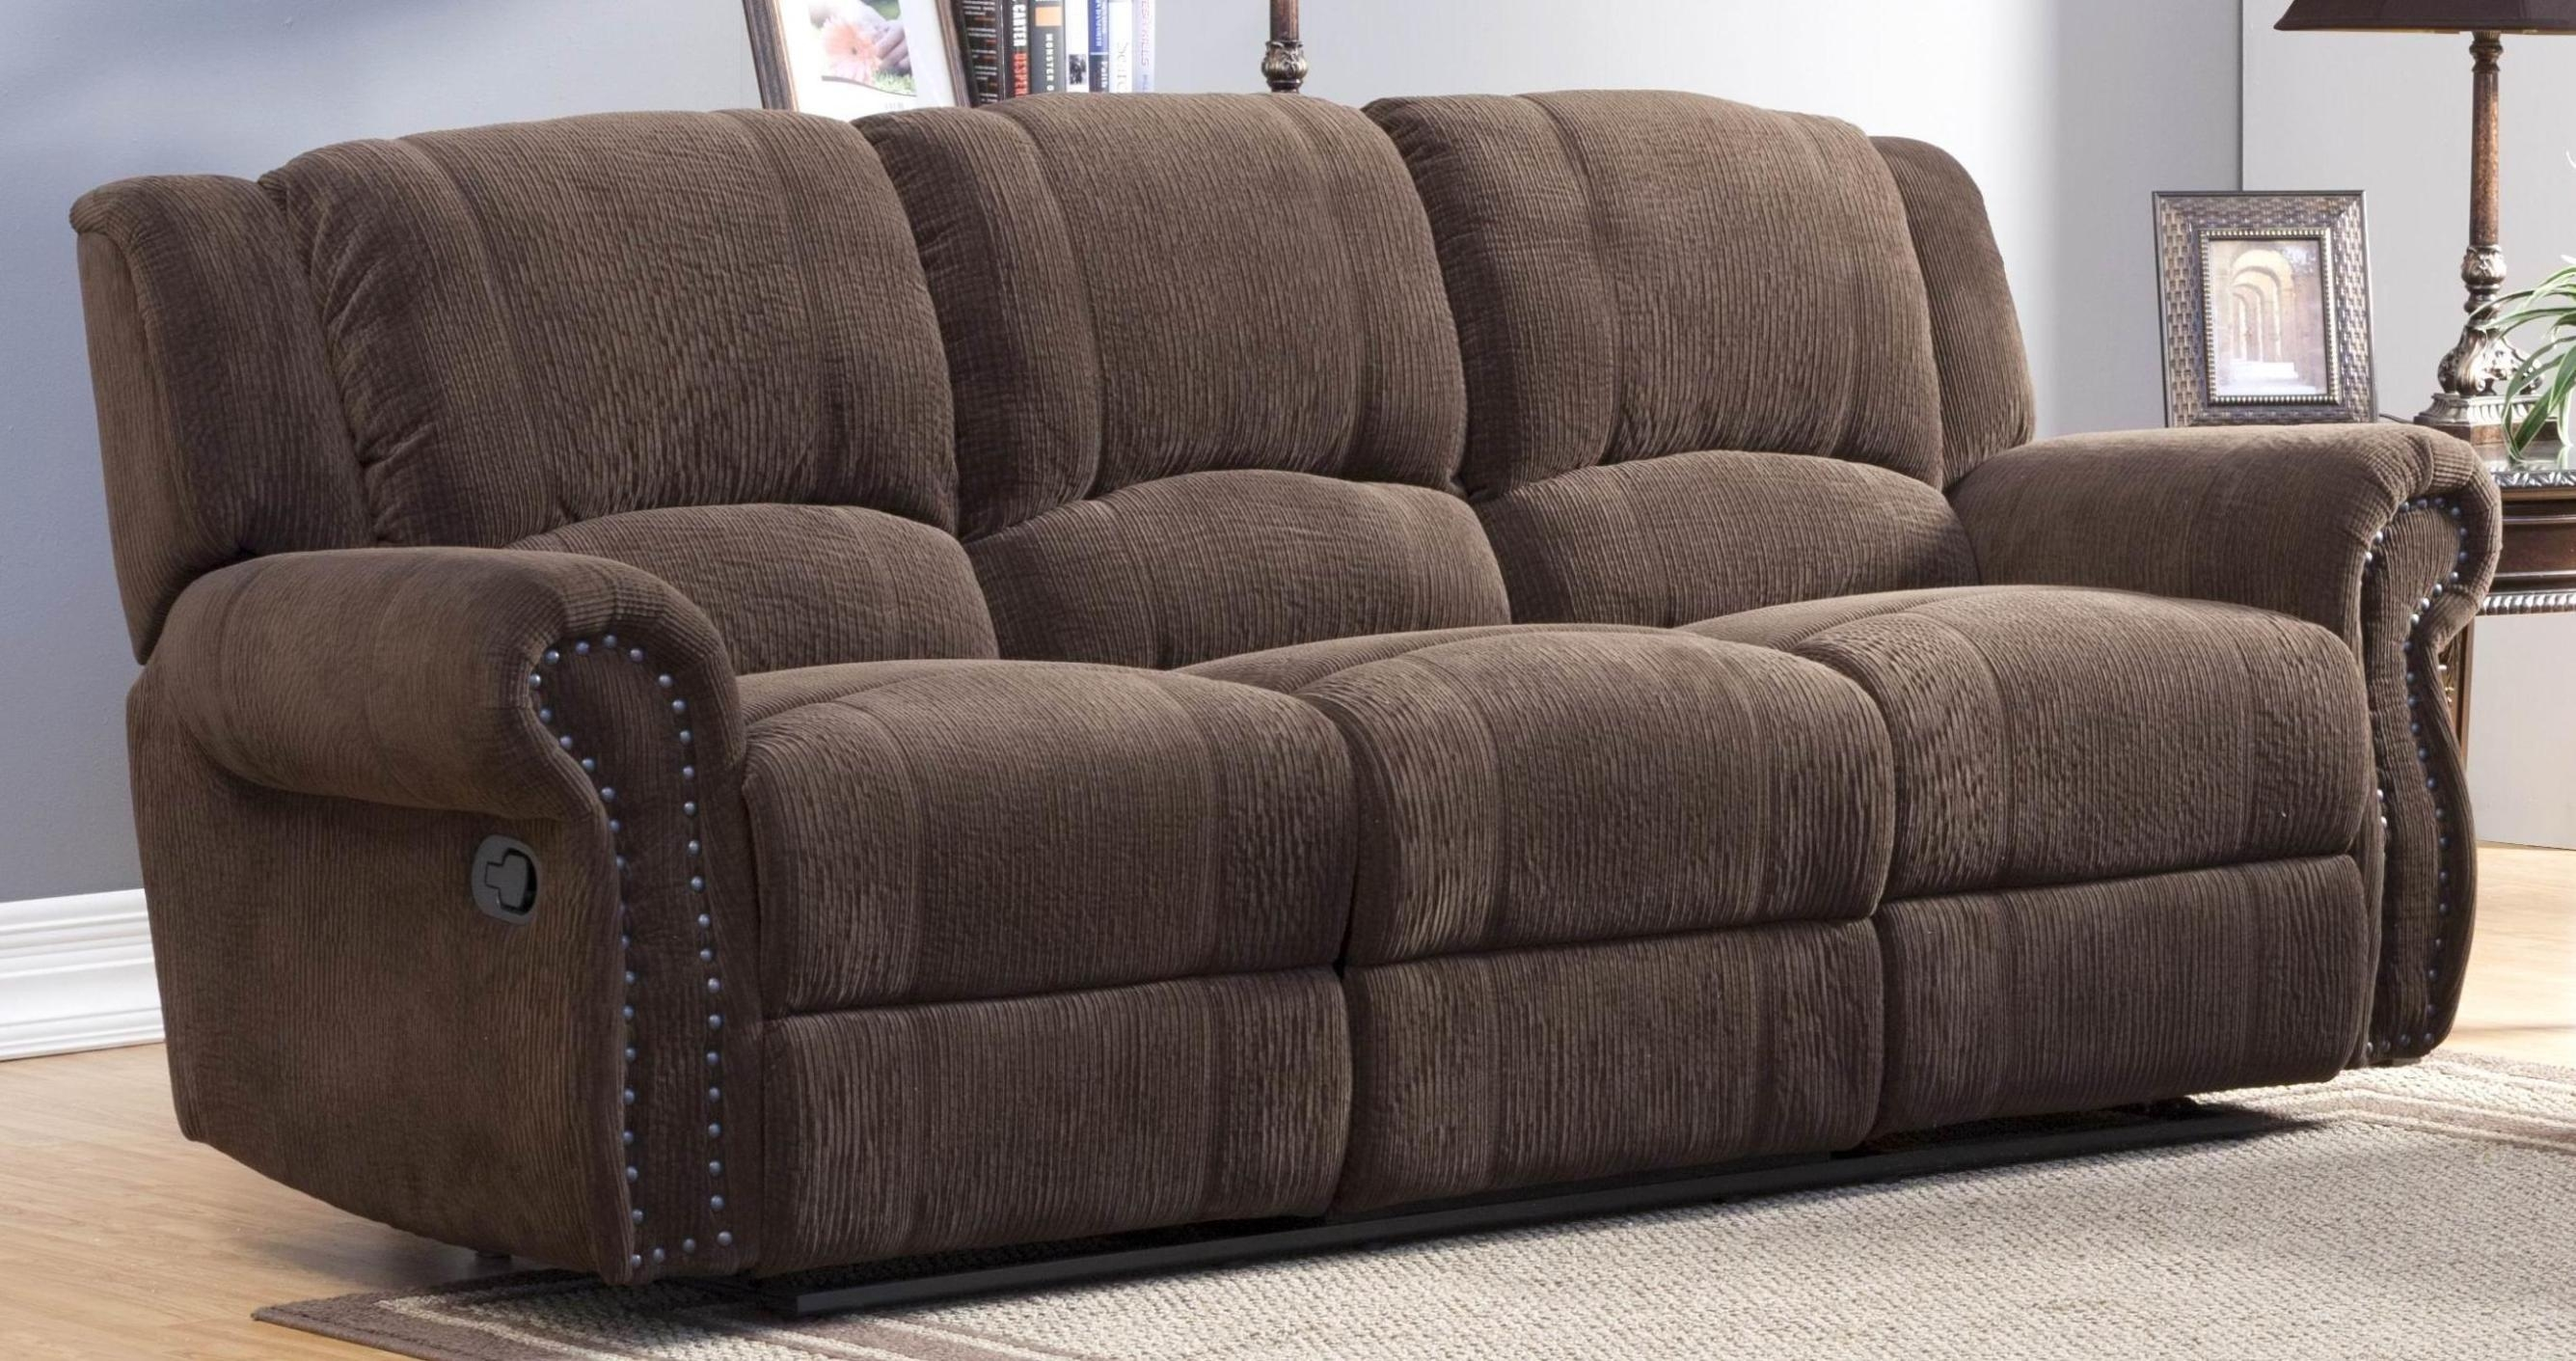 Furniture: Slipcovers For Couch | Walmart Chair Covers | Sofa Intended For Slipcover For Recliner Sofas (View 6 of 20)